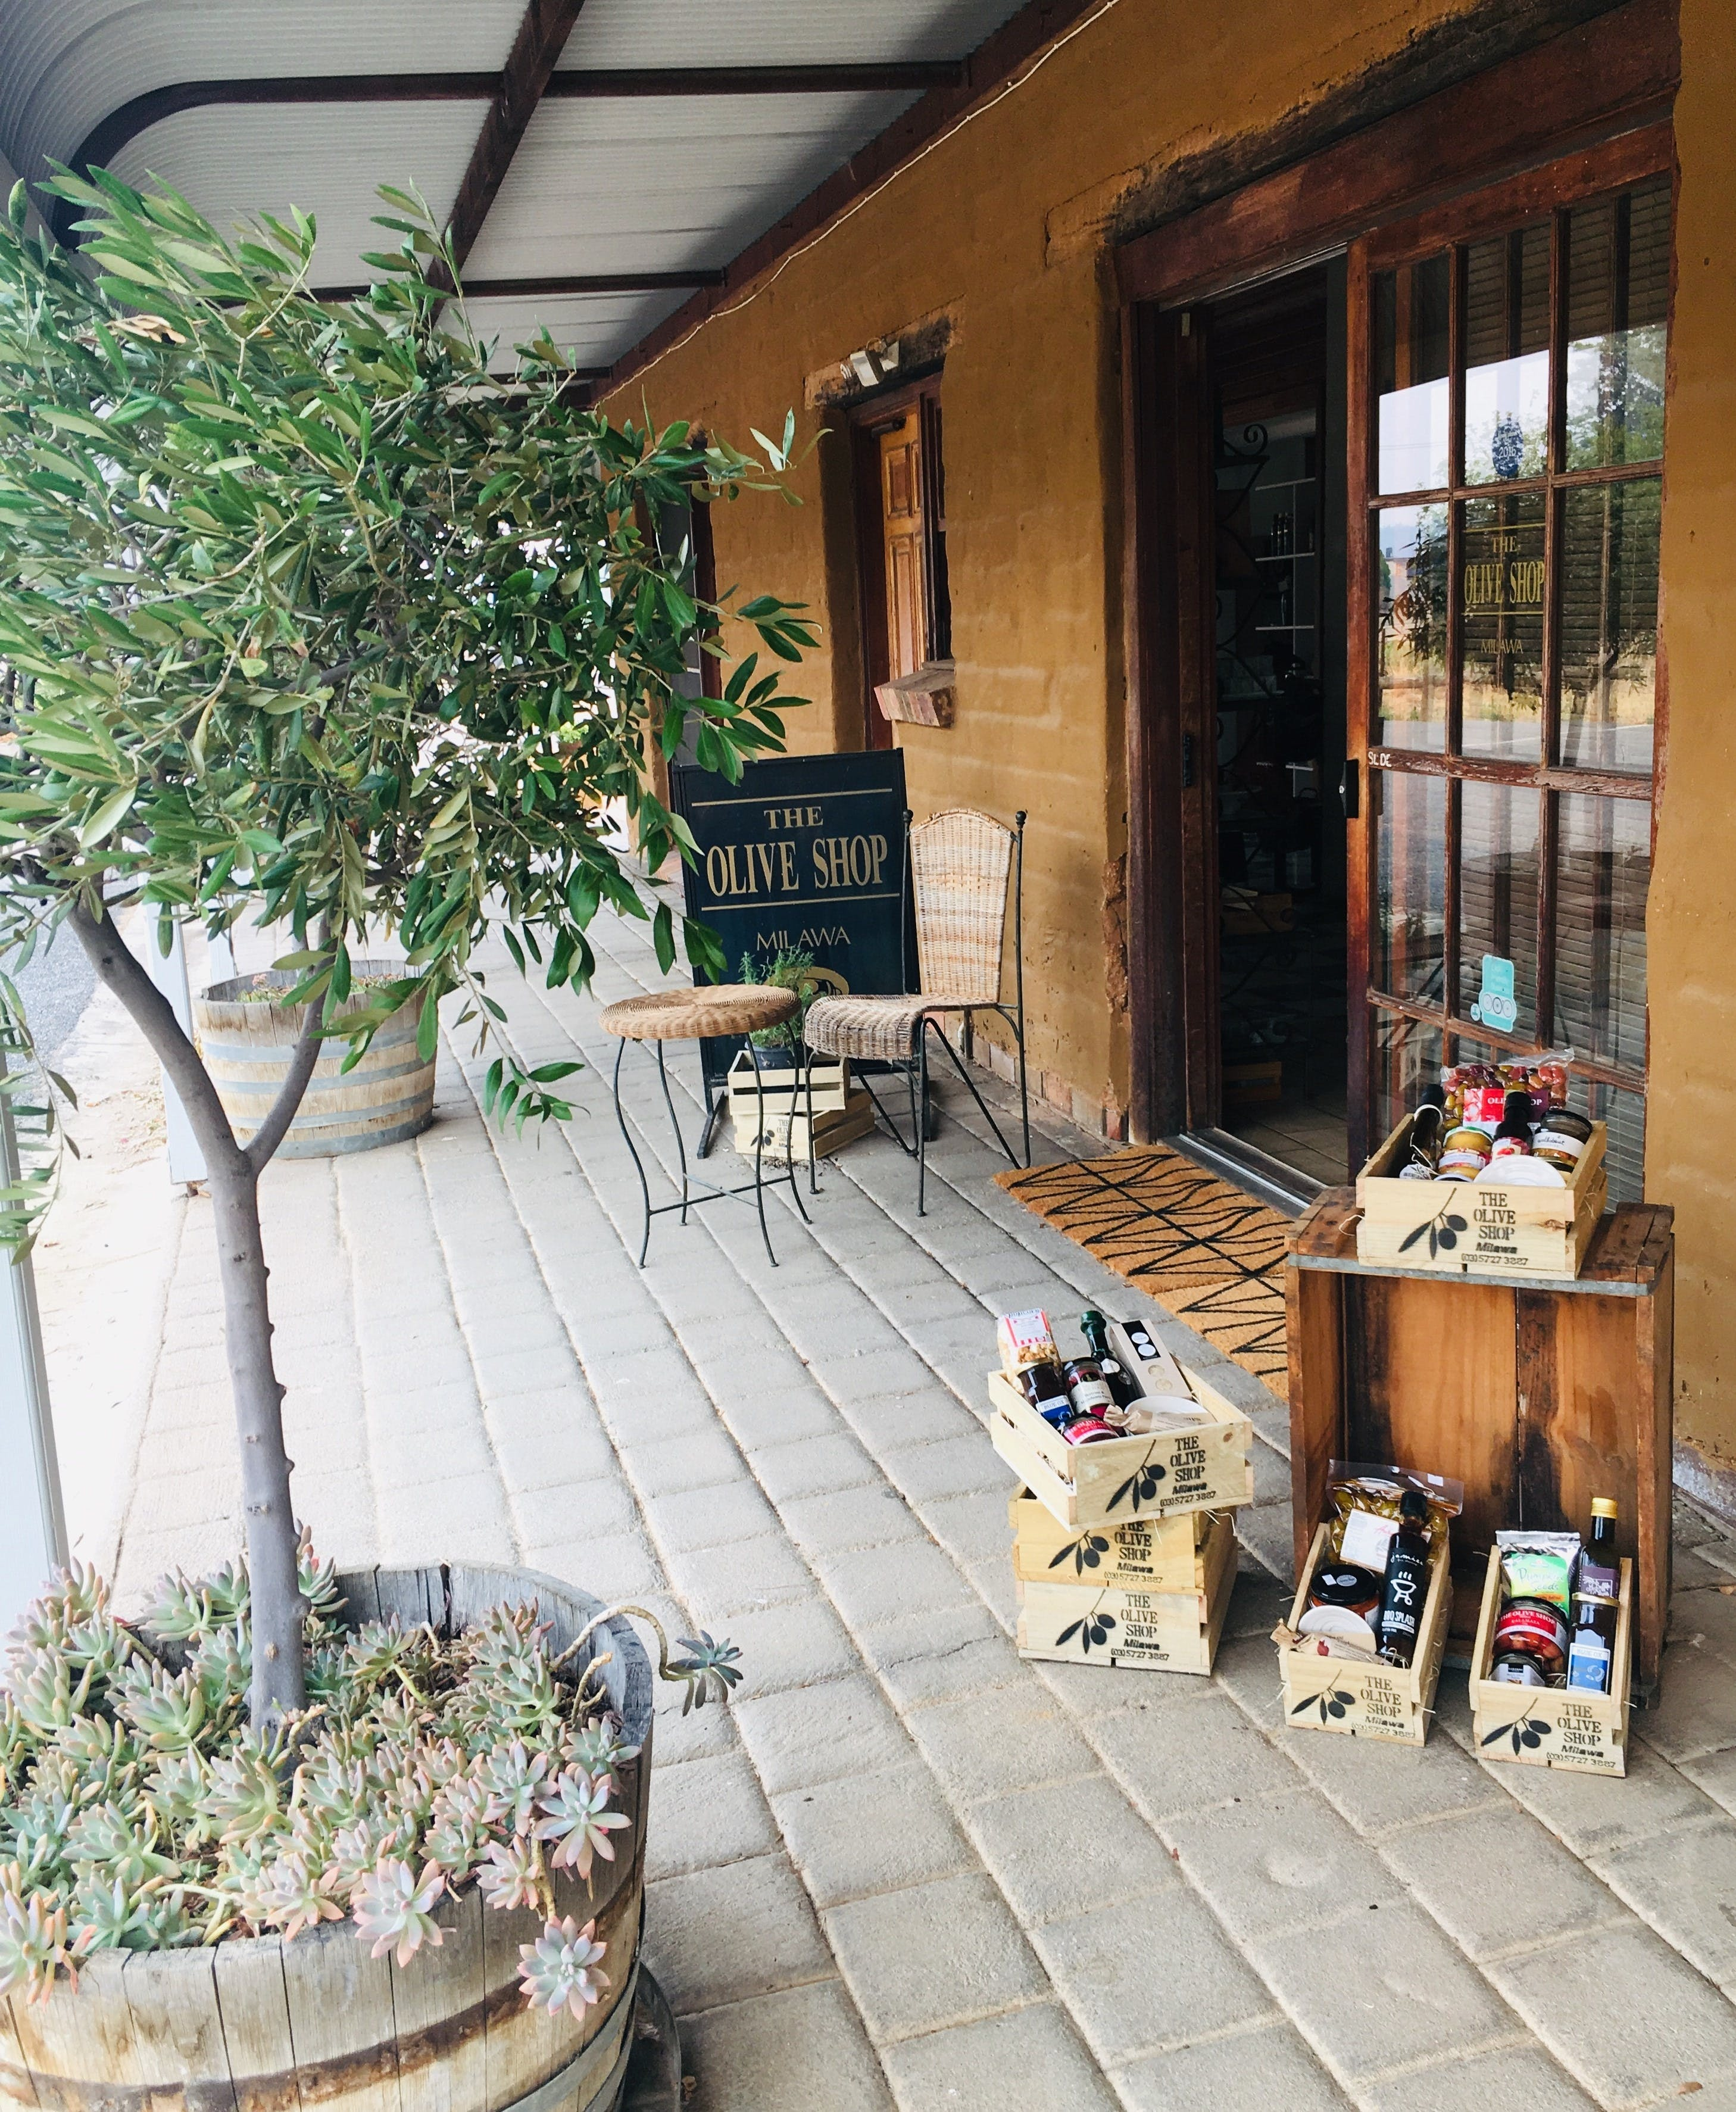 The Olive Shop - Milawa - Accommodation Find